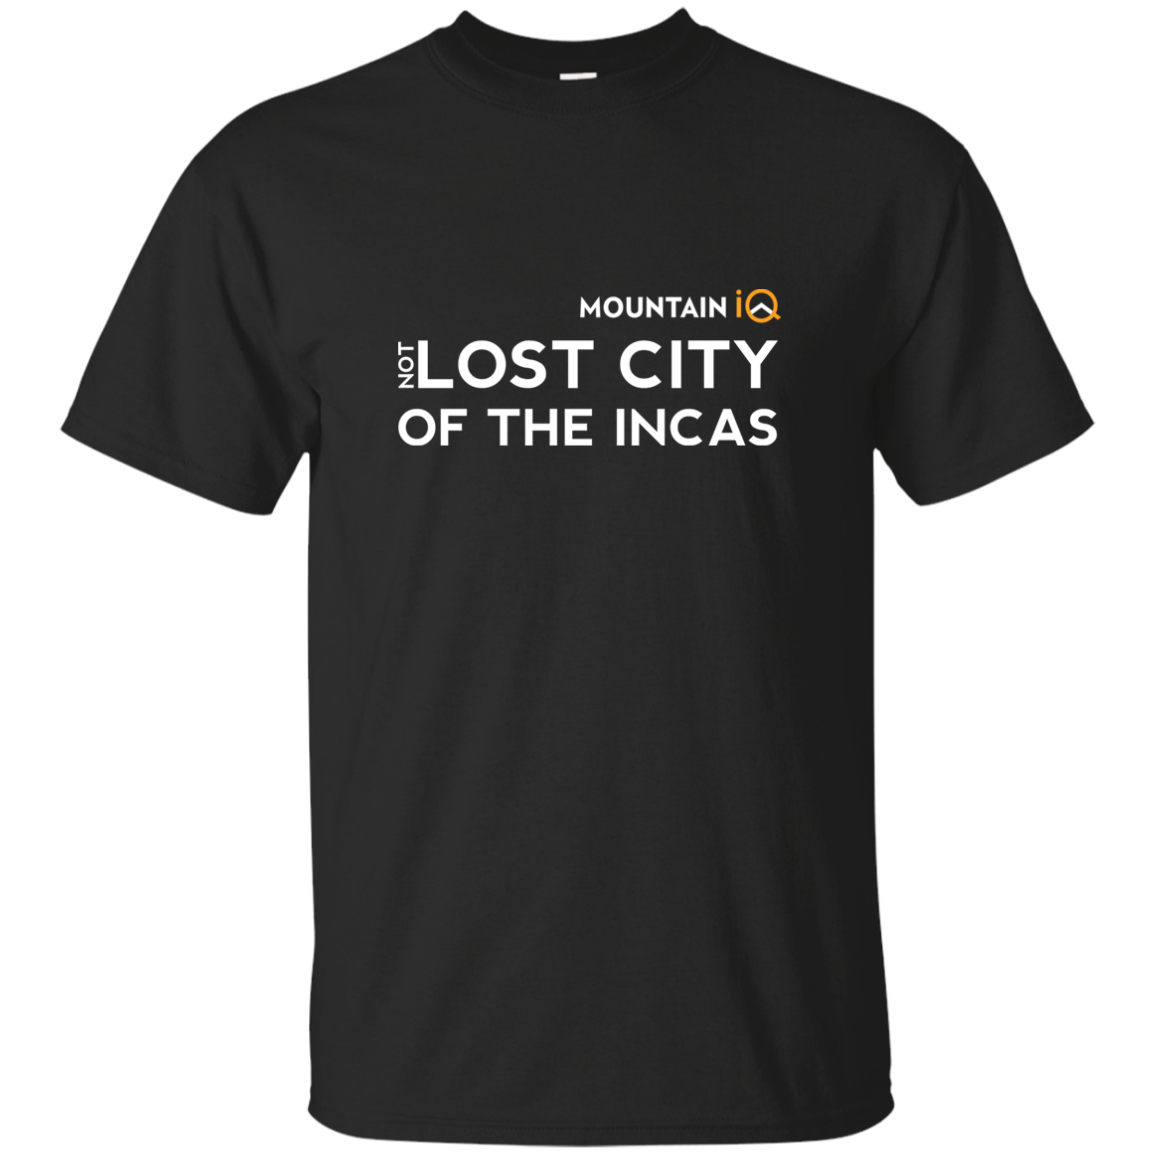 (Not)Lost City of the Incas Men's T-Shirt (Cotton/Wicking)